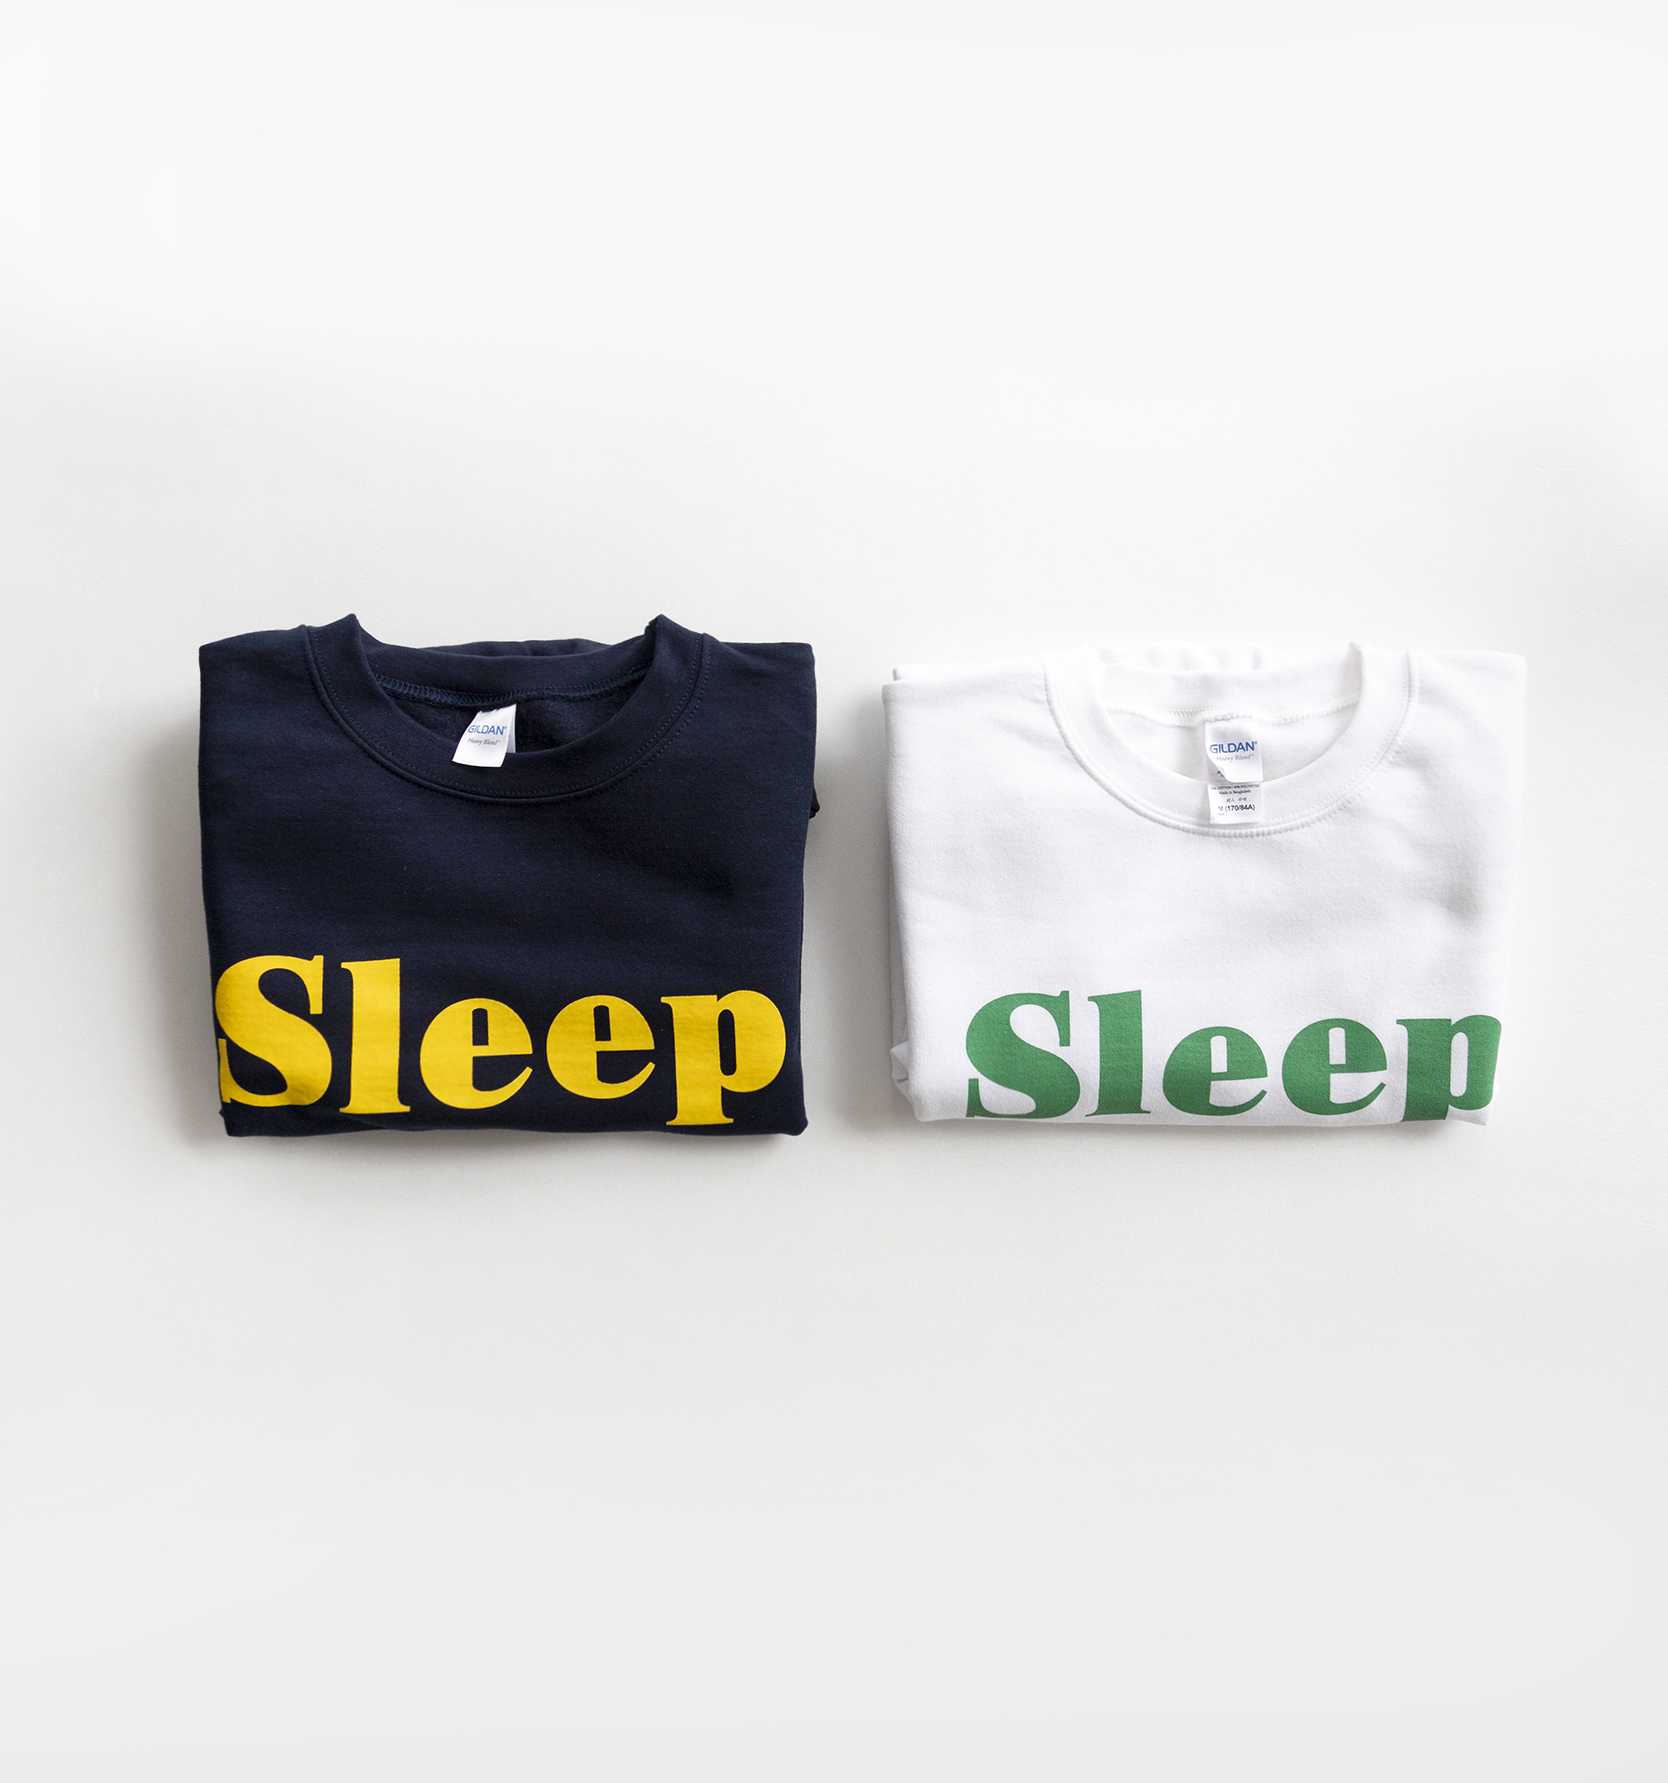 Sleep Sweatshirt(Man)